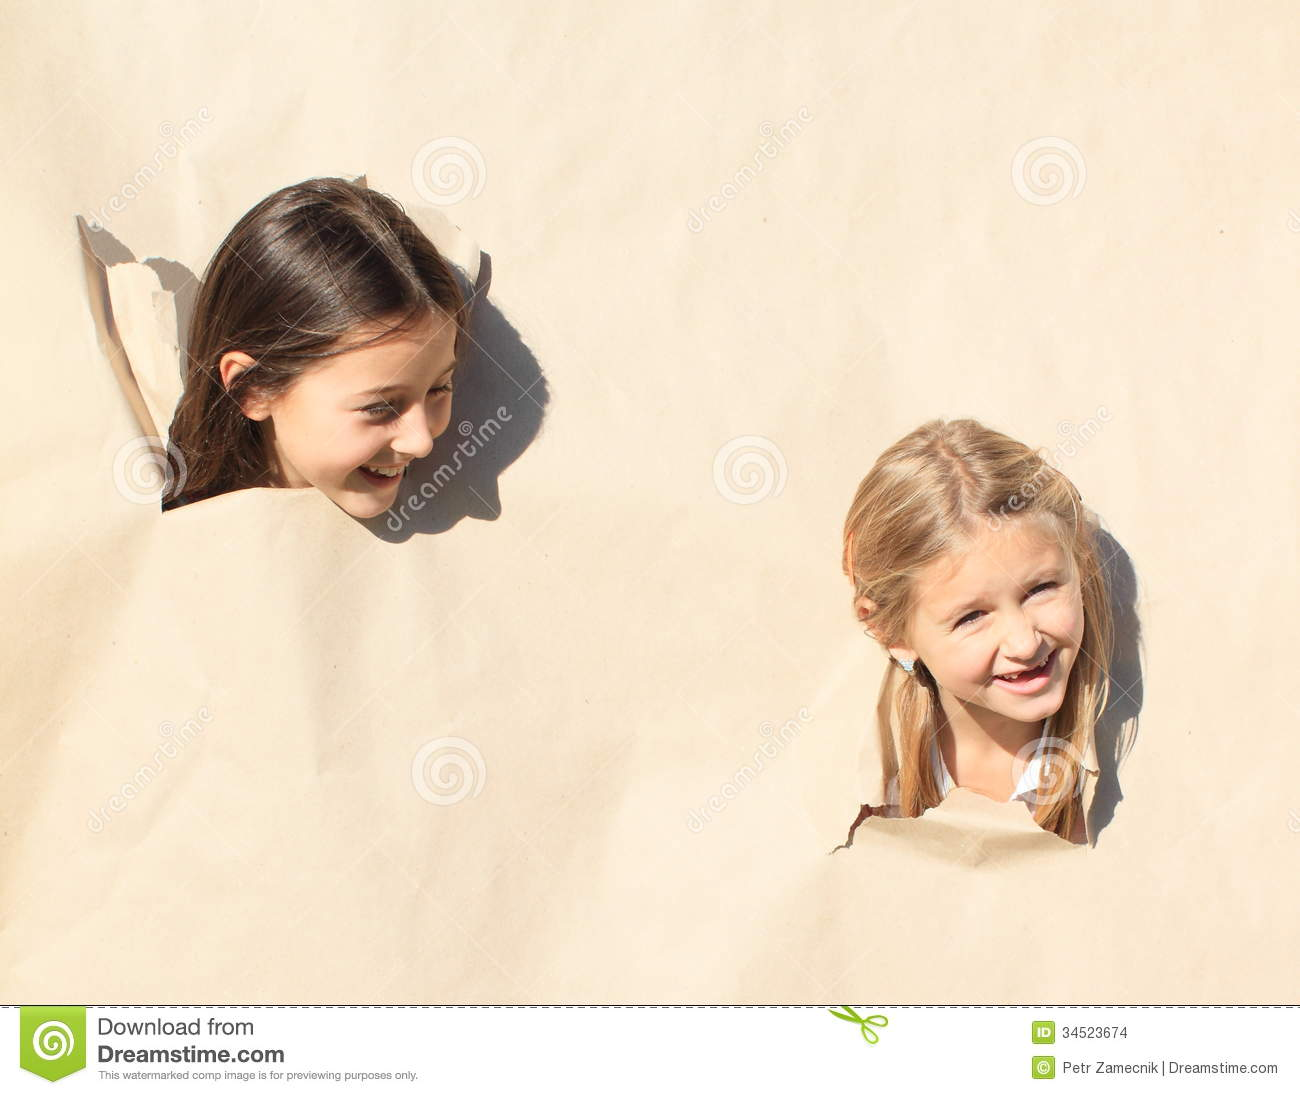 Girls Looking Thru Holes Stock Photo Image Of Hole, Paper - 34523674-4771